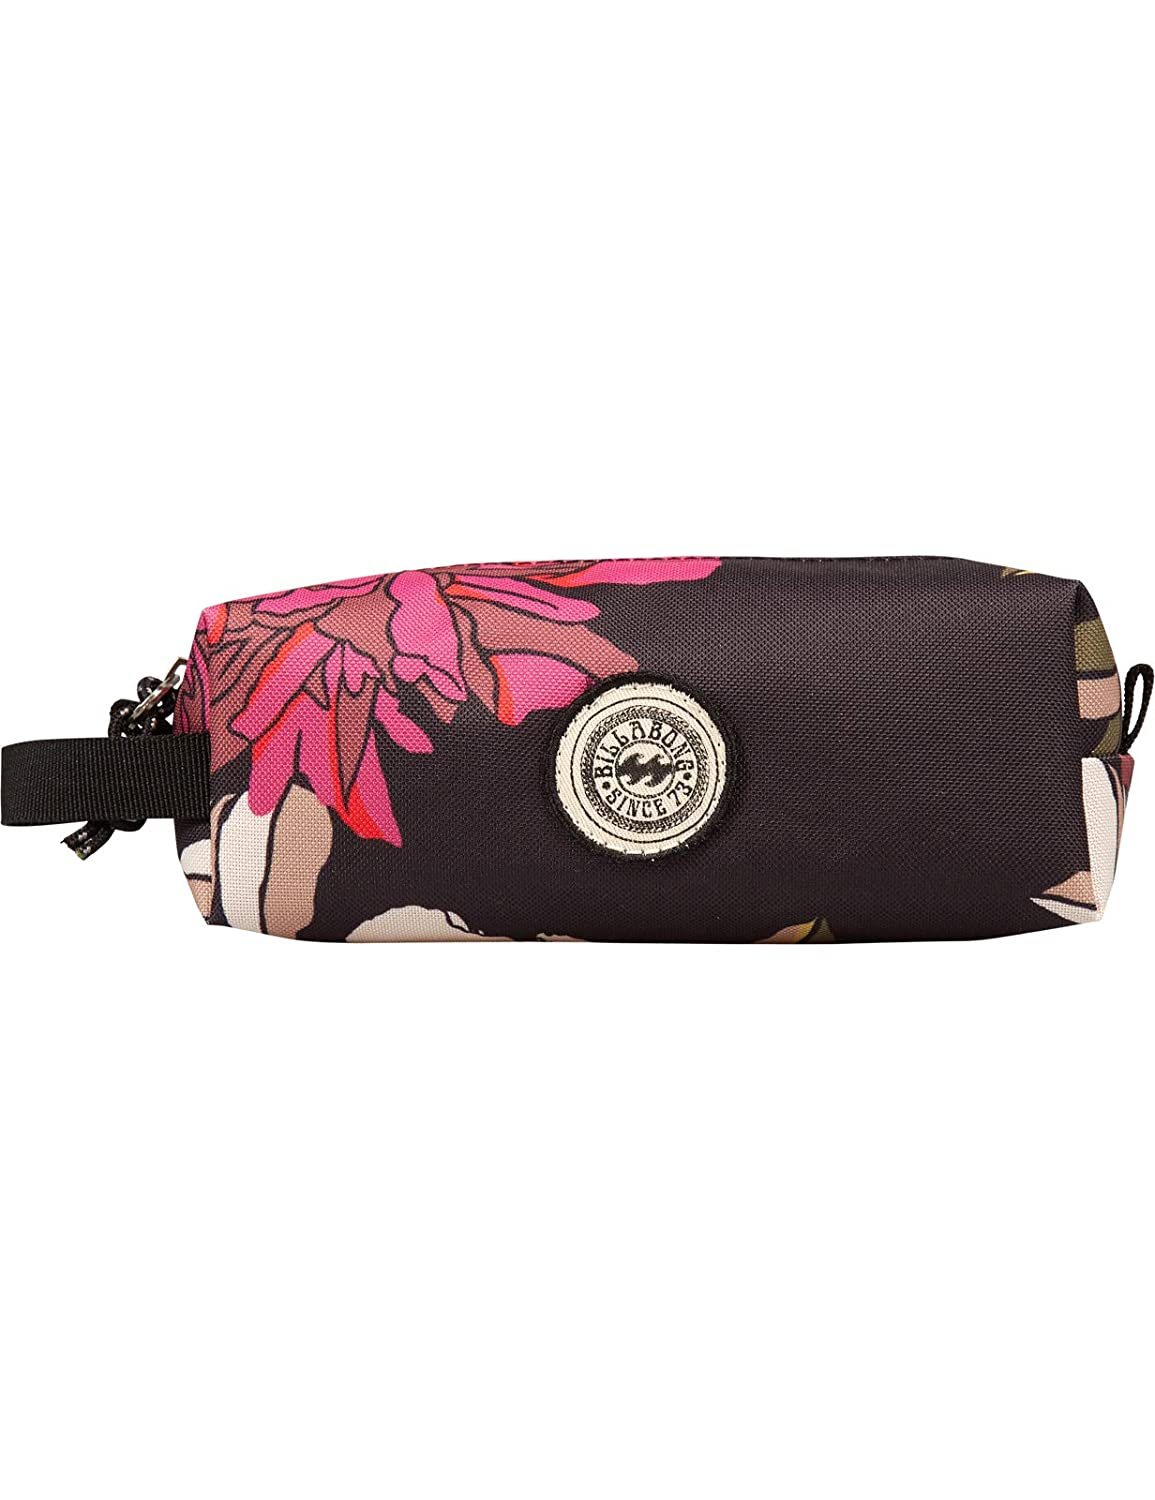 Billabong - Estuche para lápices, color rosa: Amazon.es ...